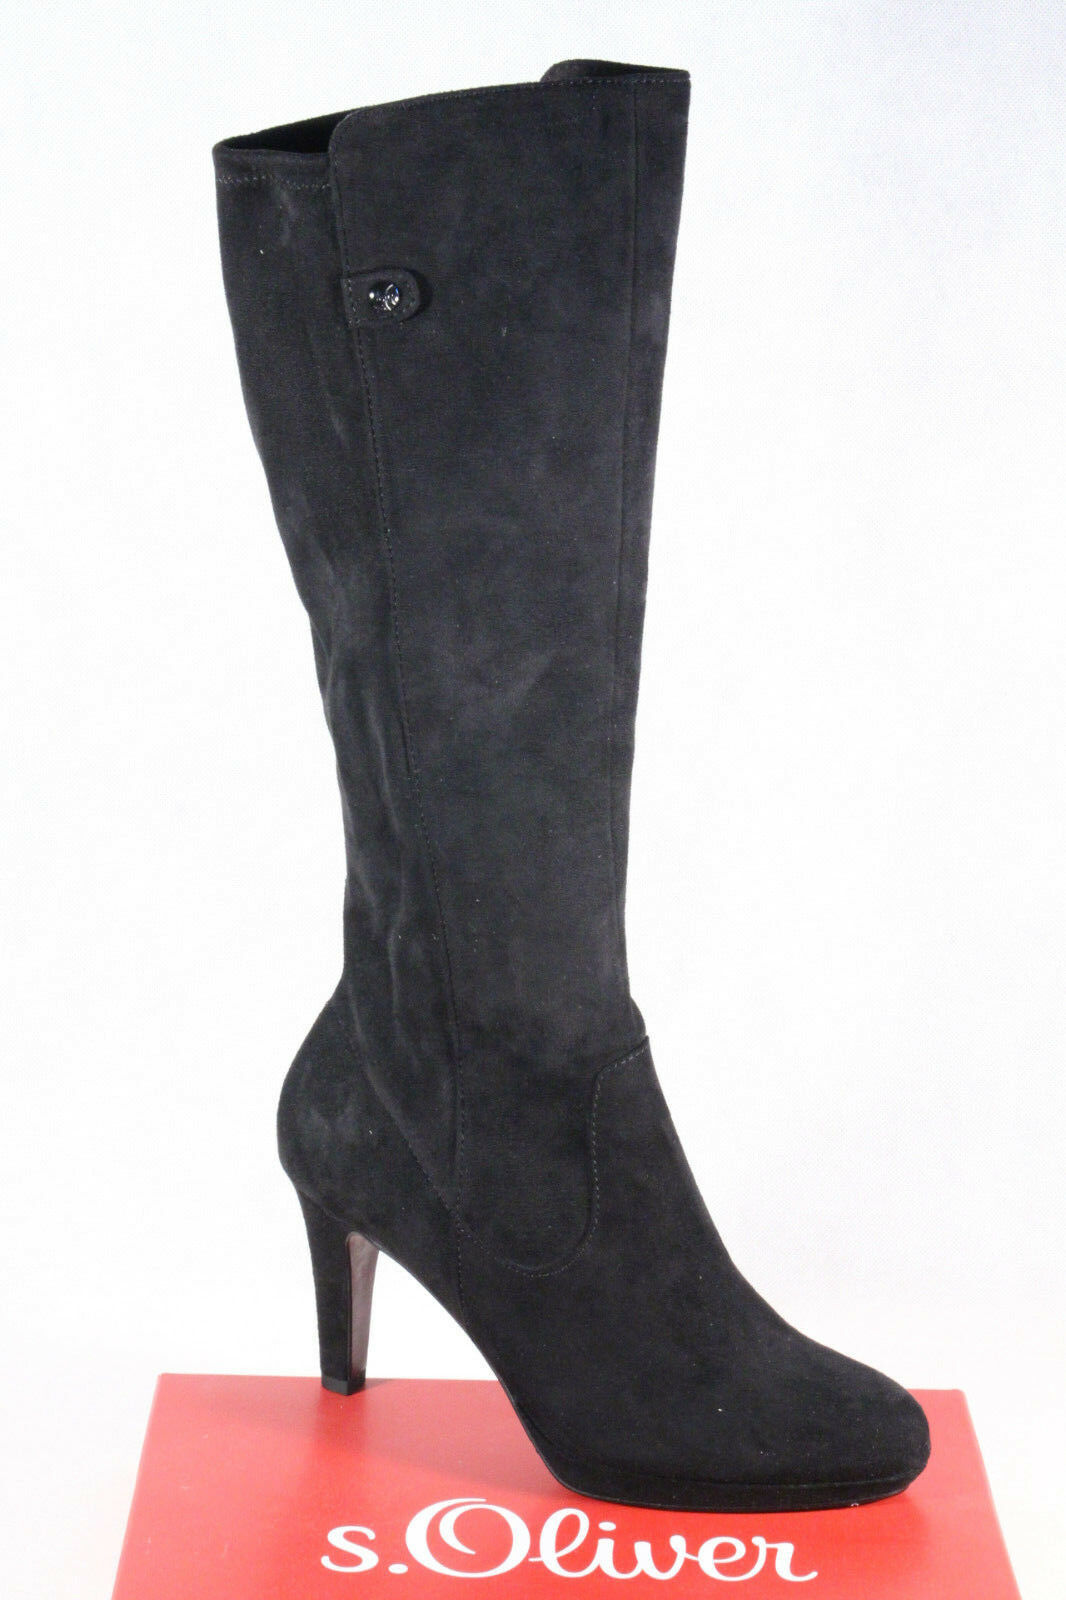 S.OLIVER 25506 Women's Boots, Ankle Boots Winter Boots Black New